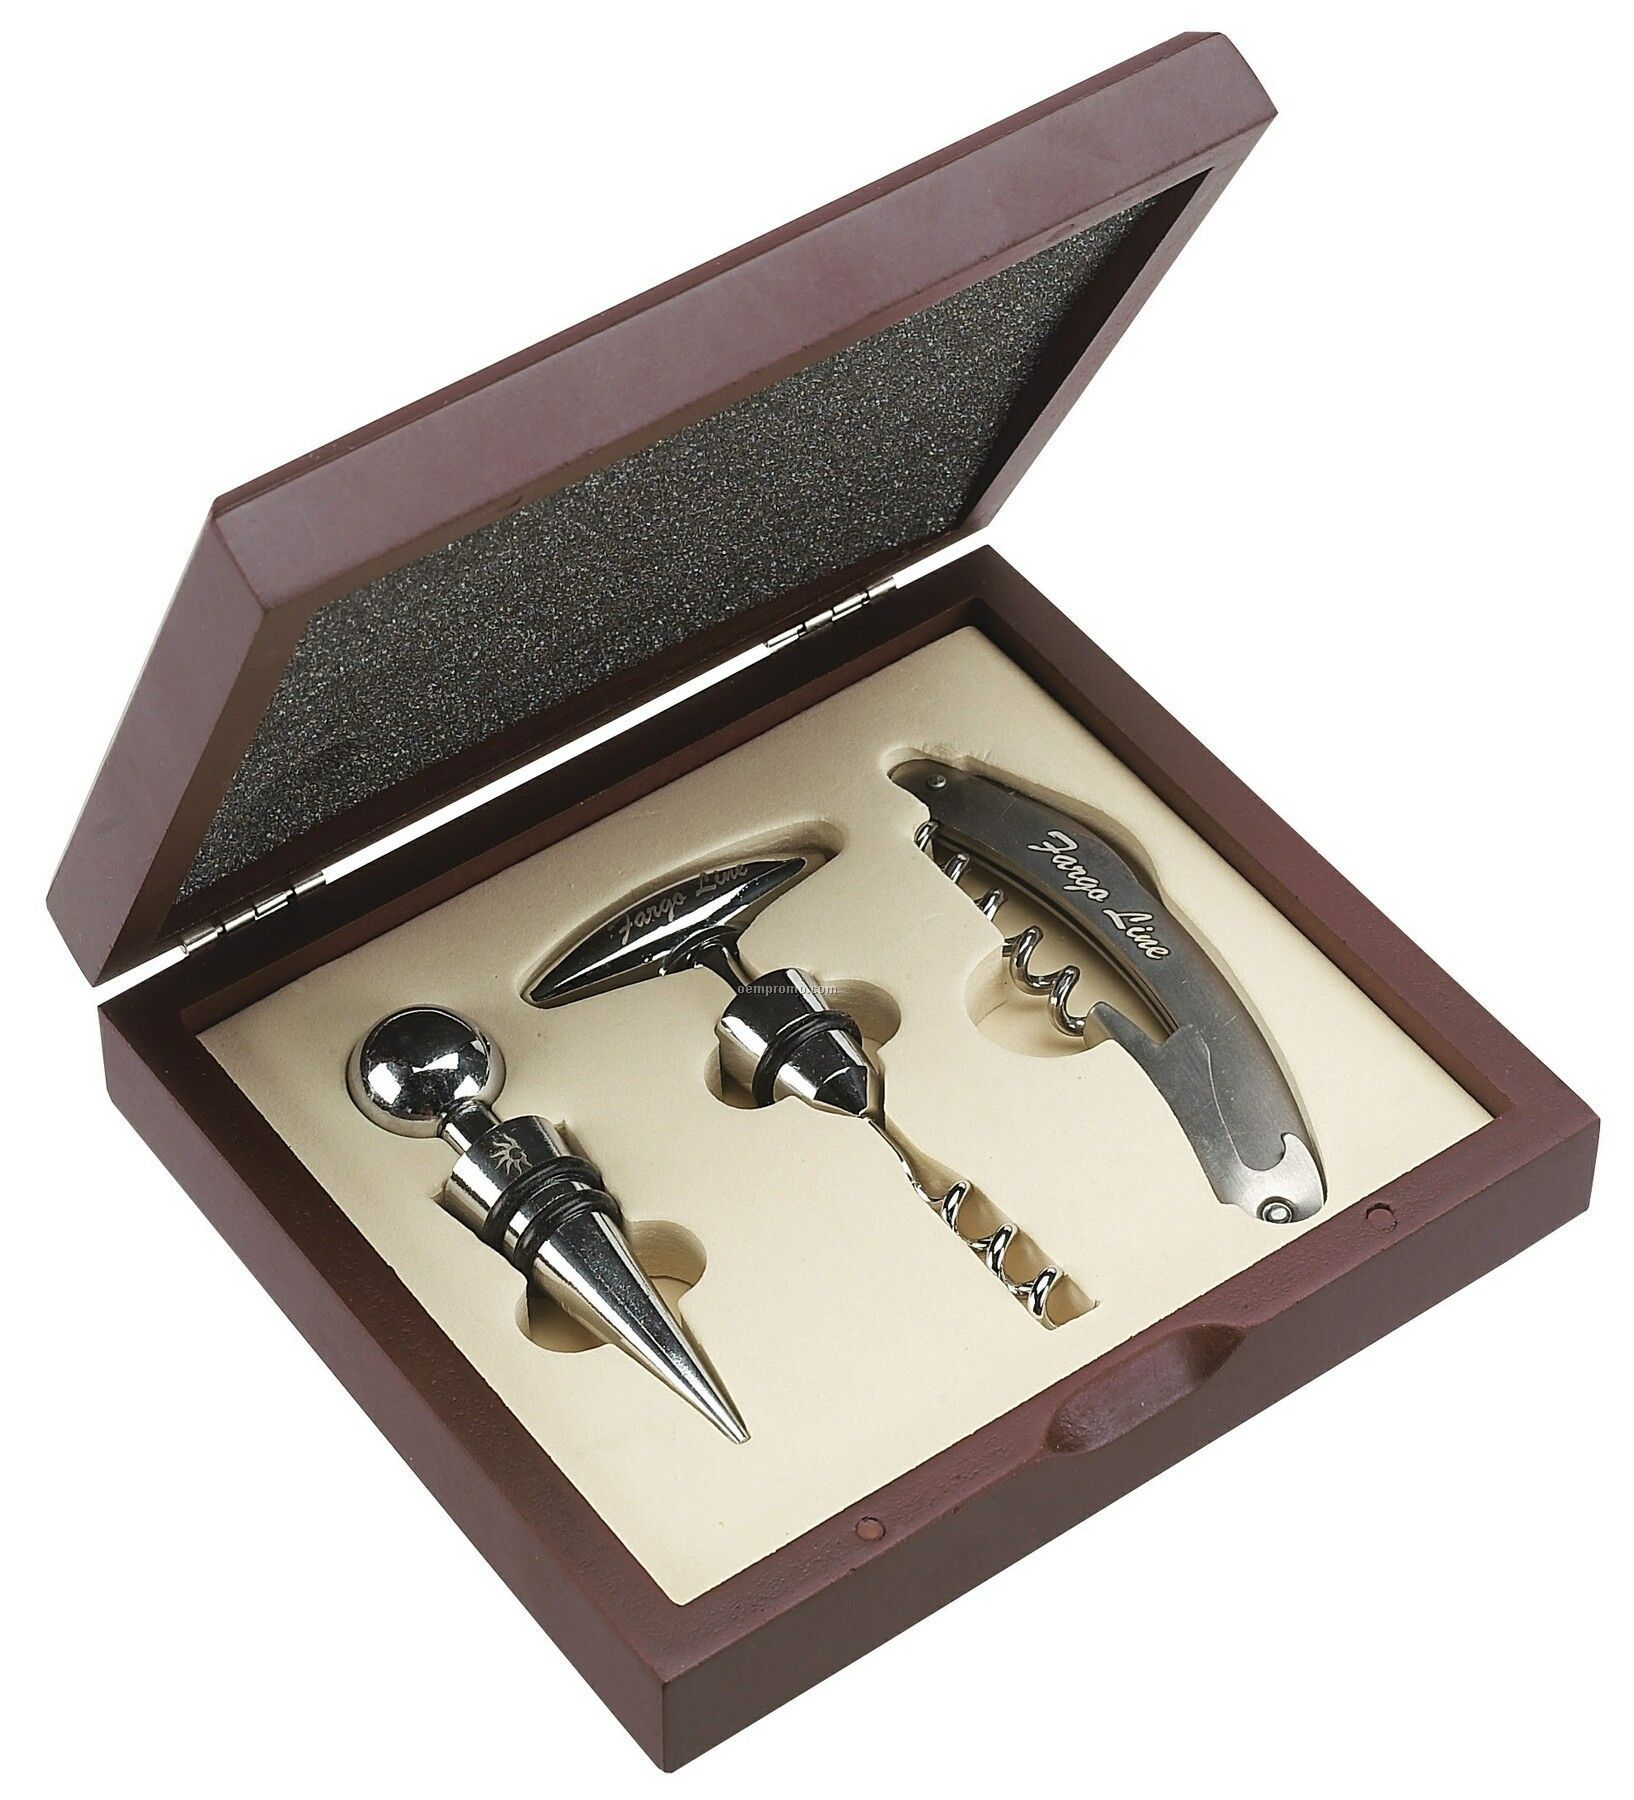 3 Piece Wine Opener Set W/ Chrome Trim